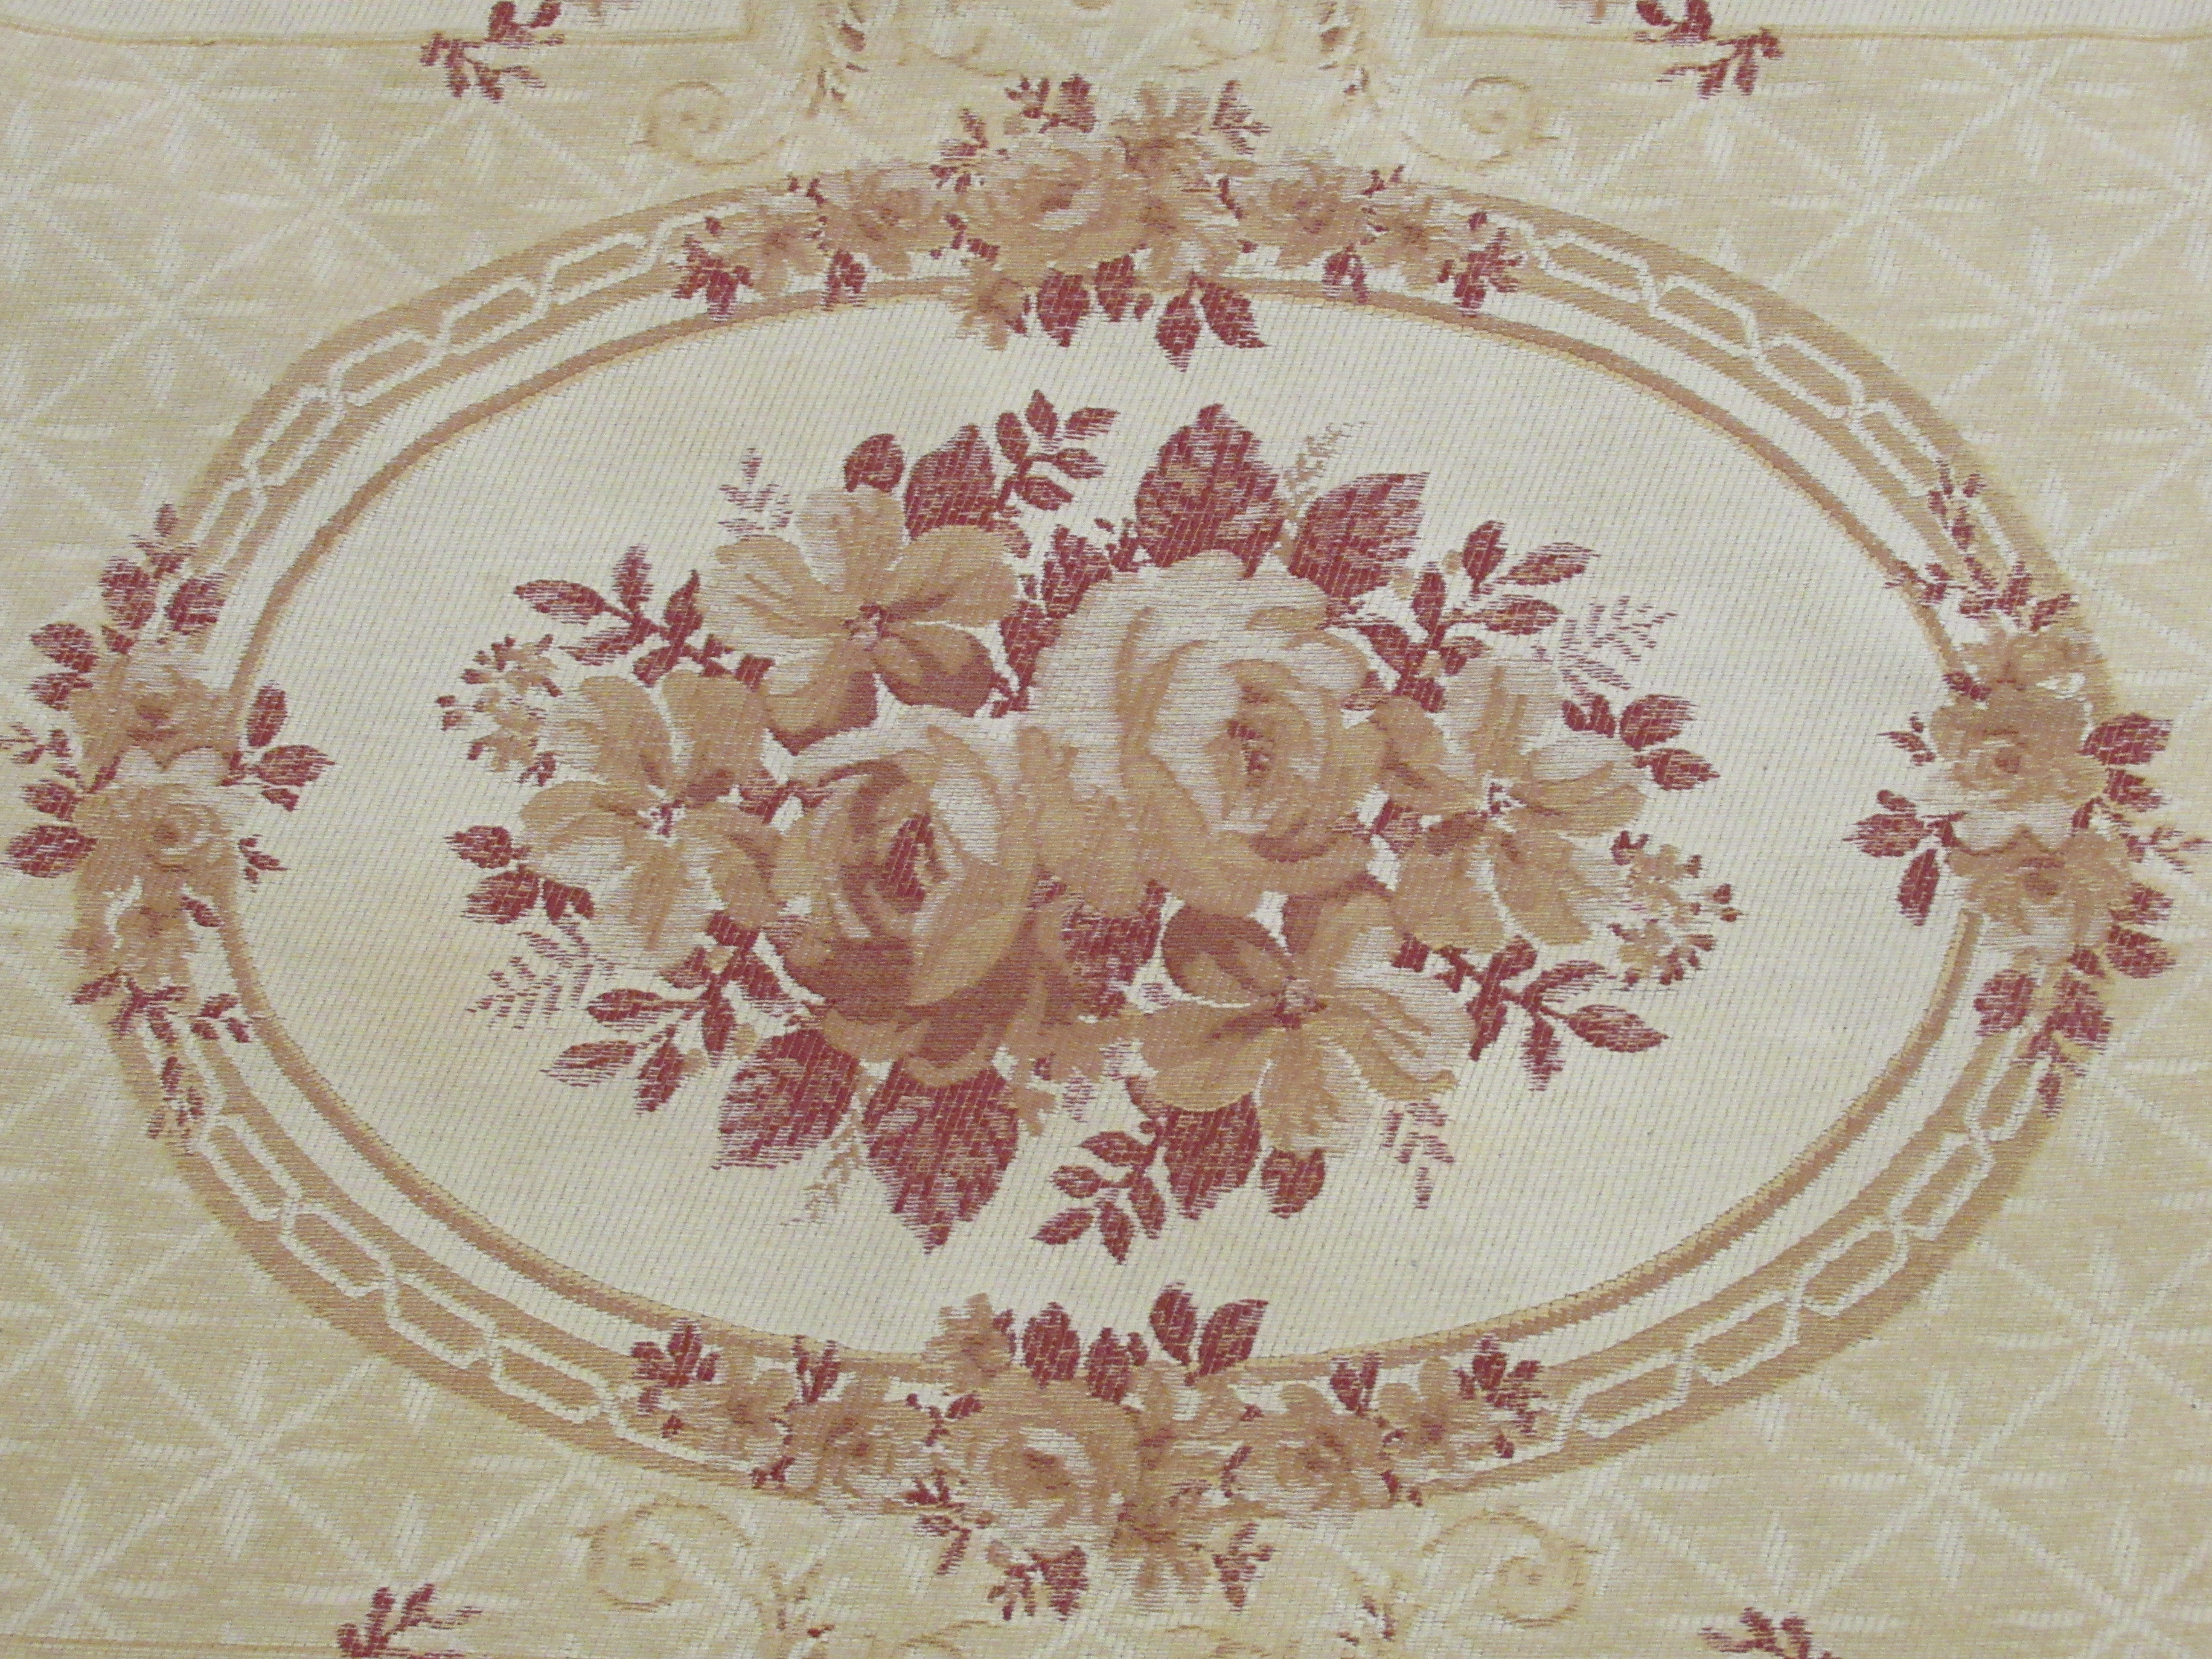 """A Belgian design wall hanging with floral decoration, on a beige ground 89"""" x 60"""" - Image 2 of 5"""